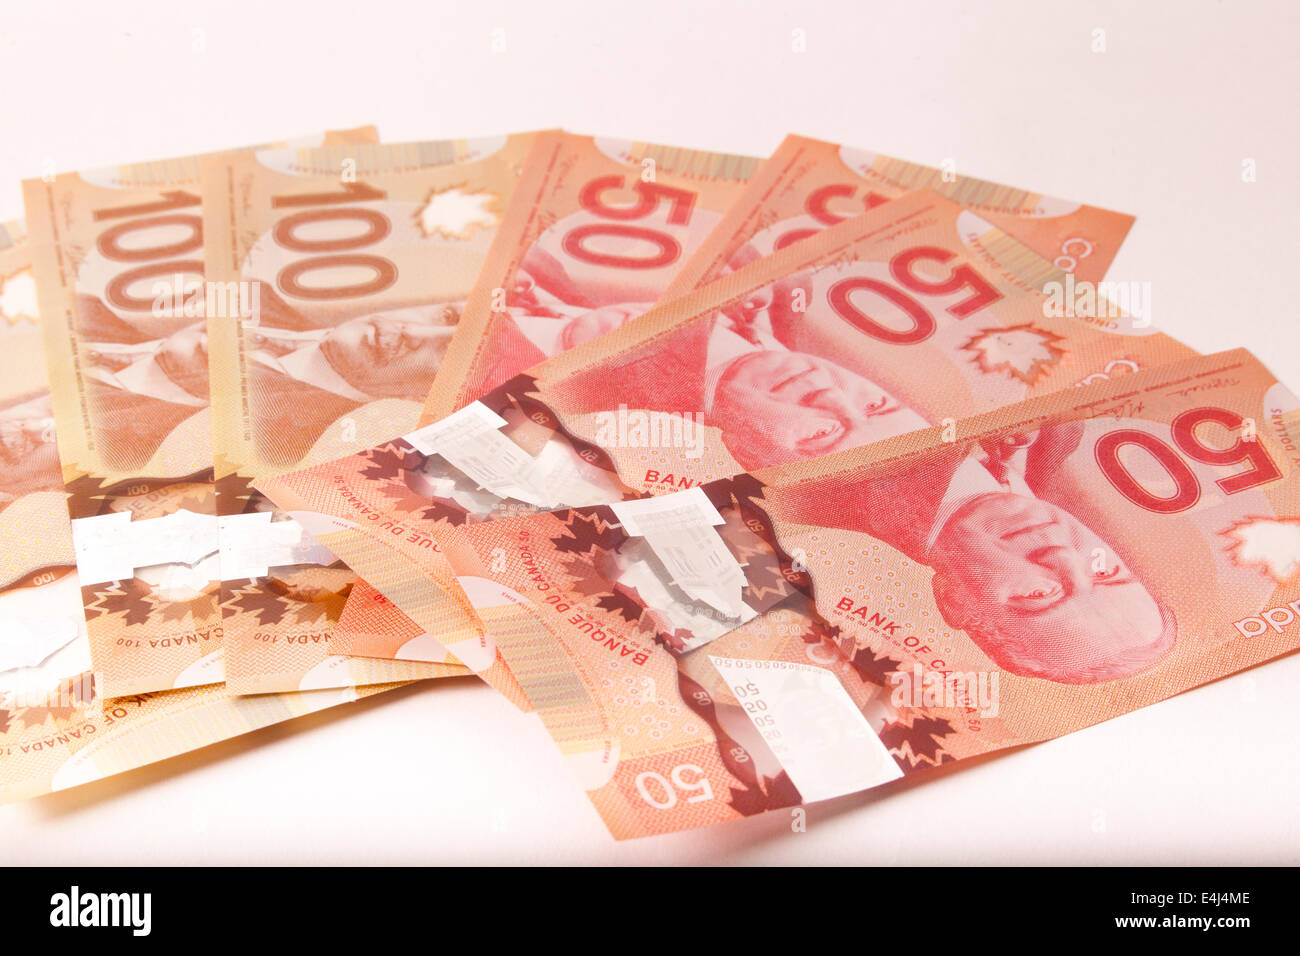 Canada currency fan 50 and 100 dollar bills - Stock Image